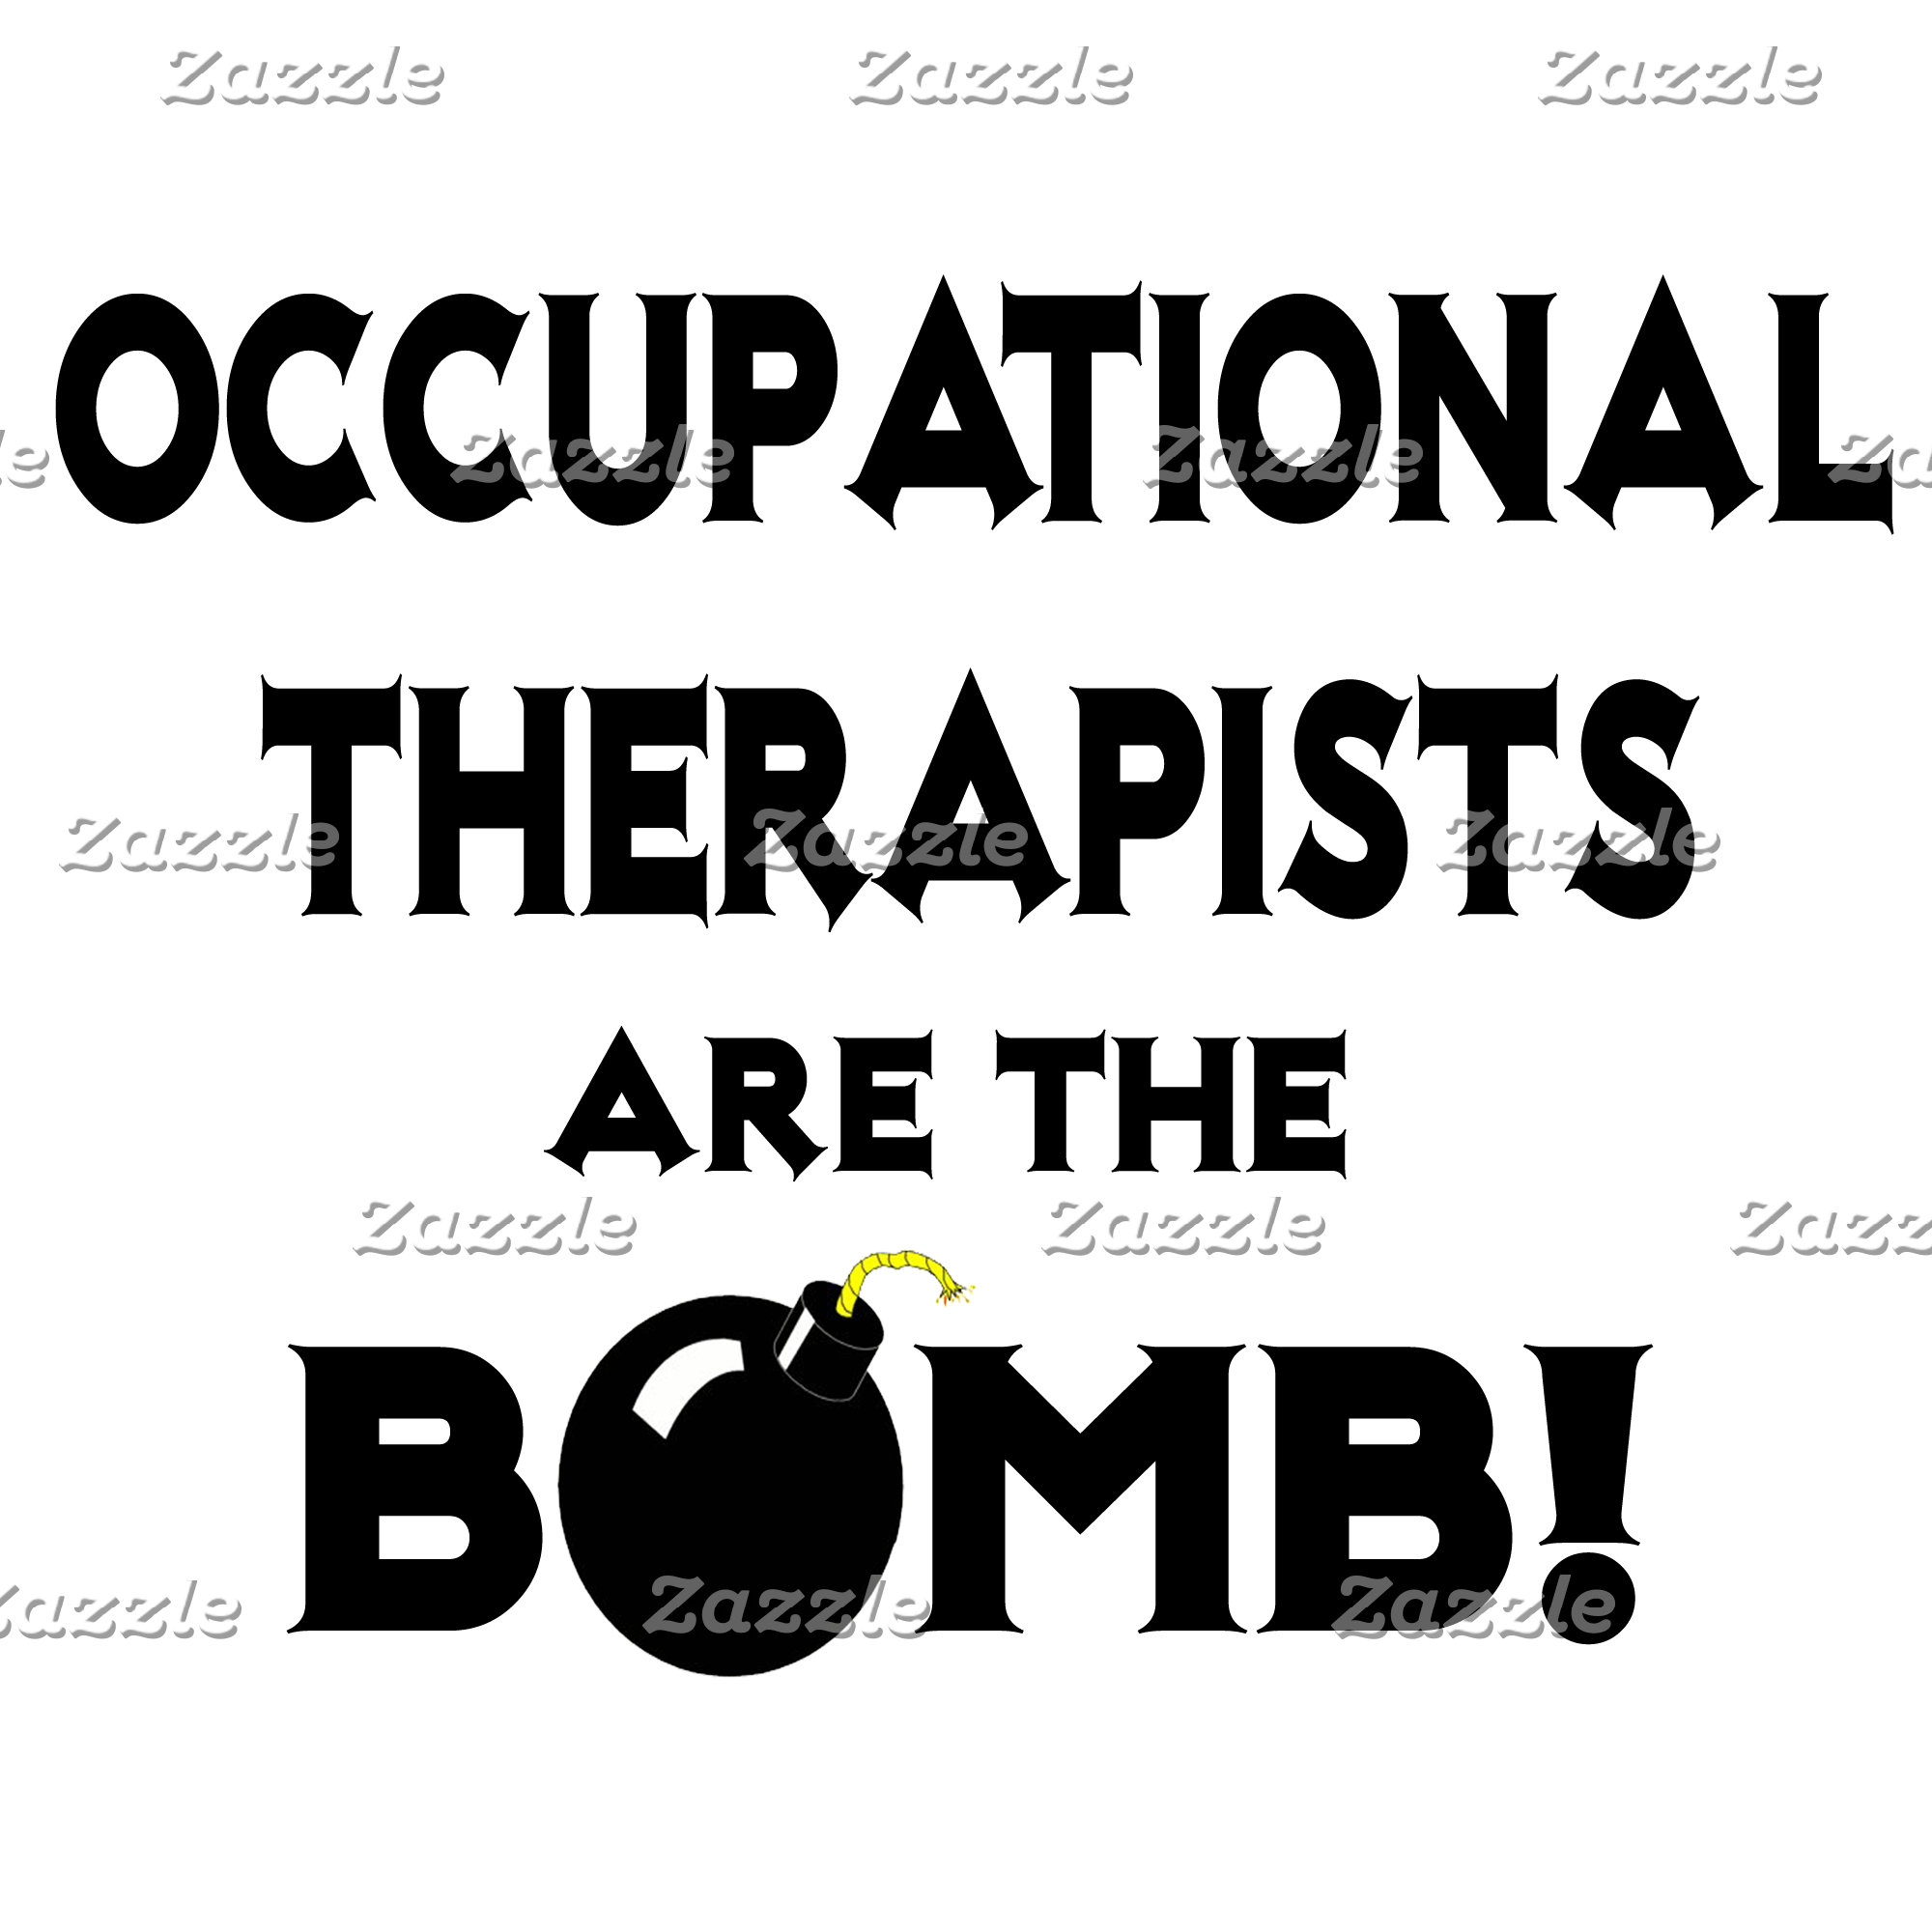 Occupational Therapists Are The Bomb!